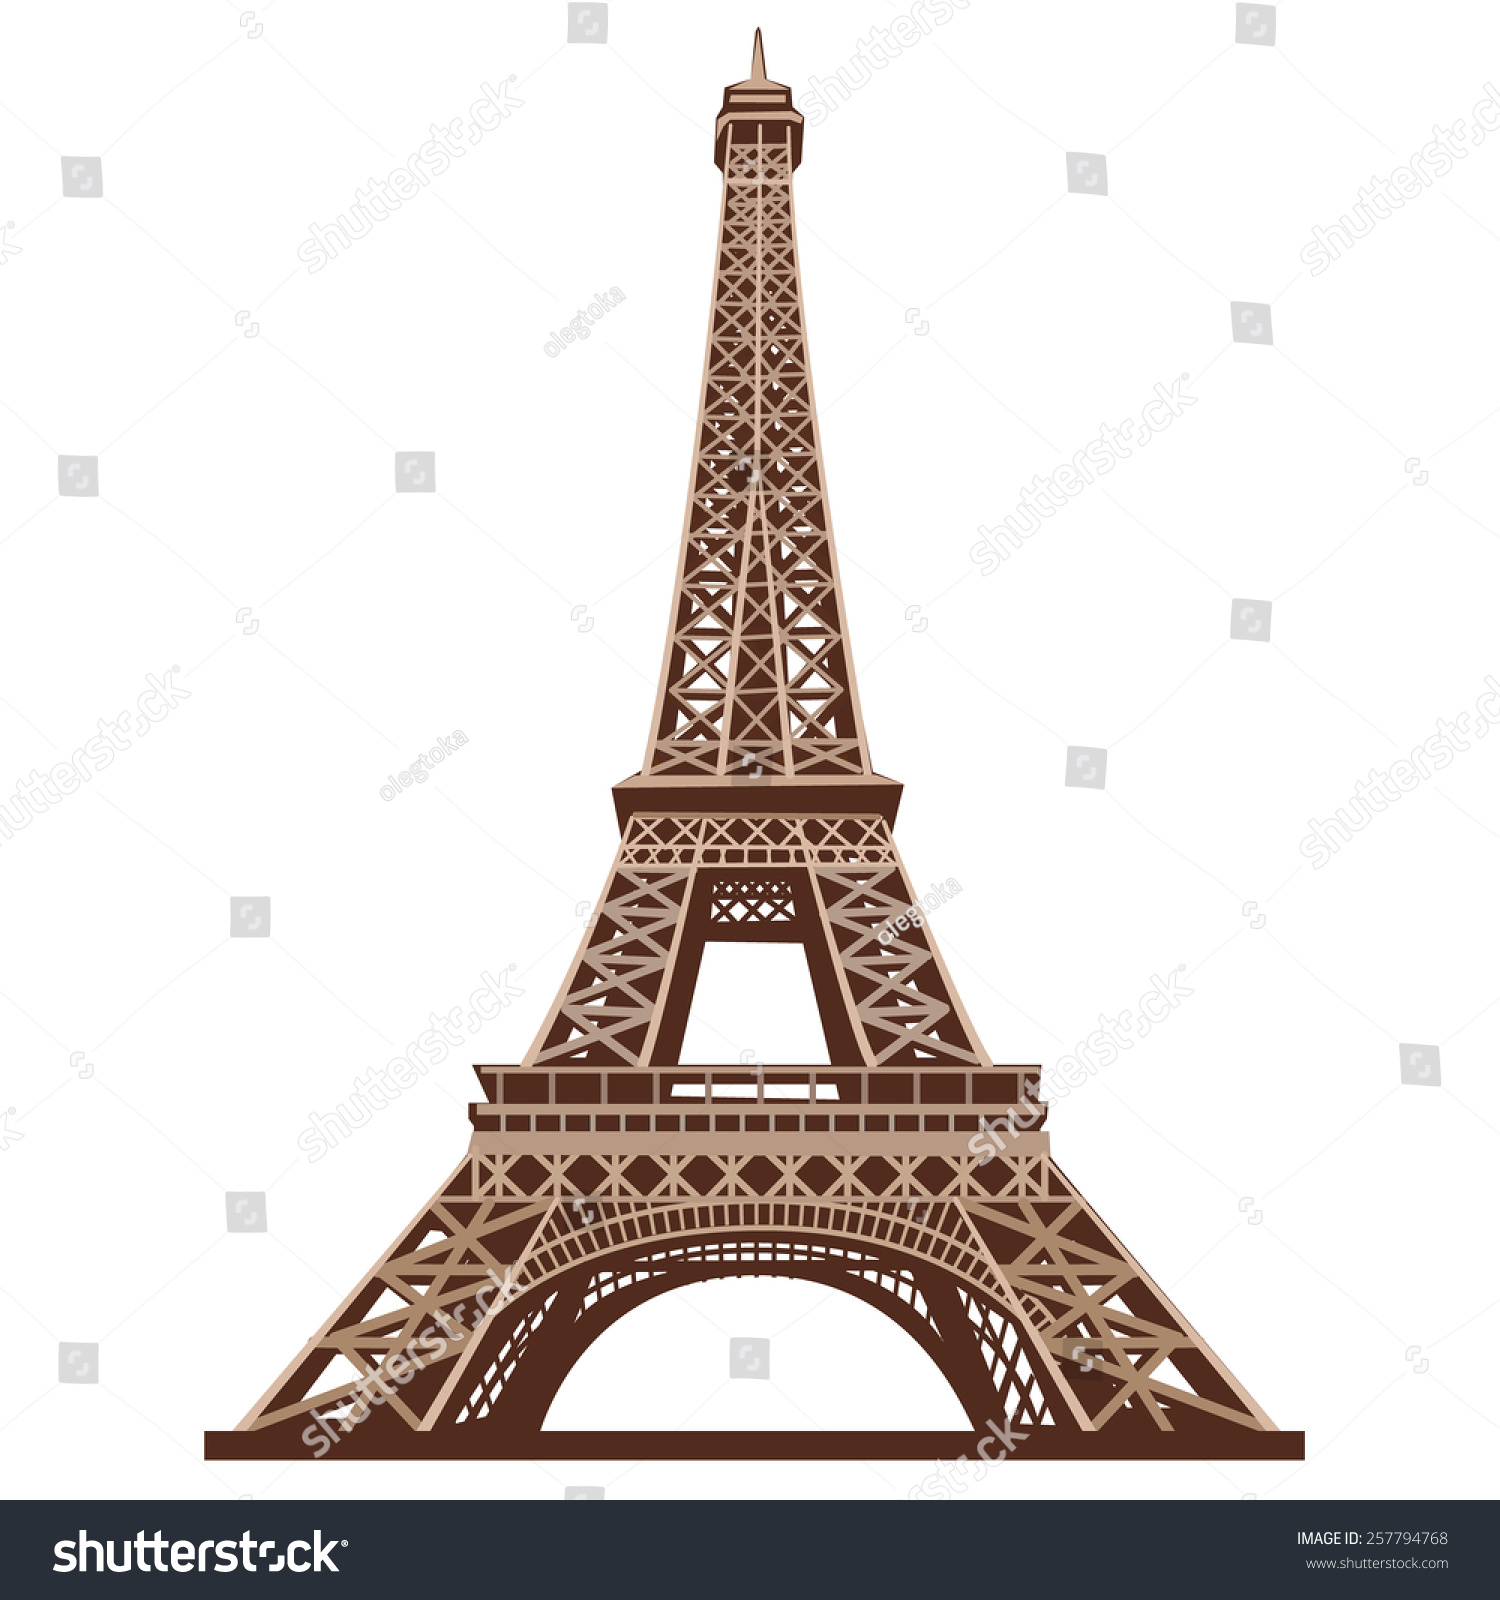 related to eiffel tower - photo #25